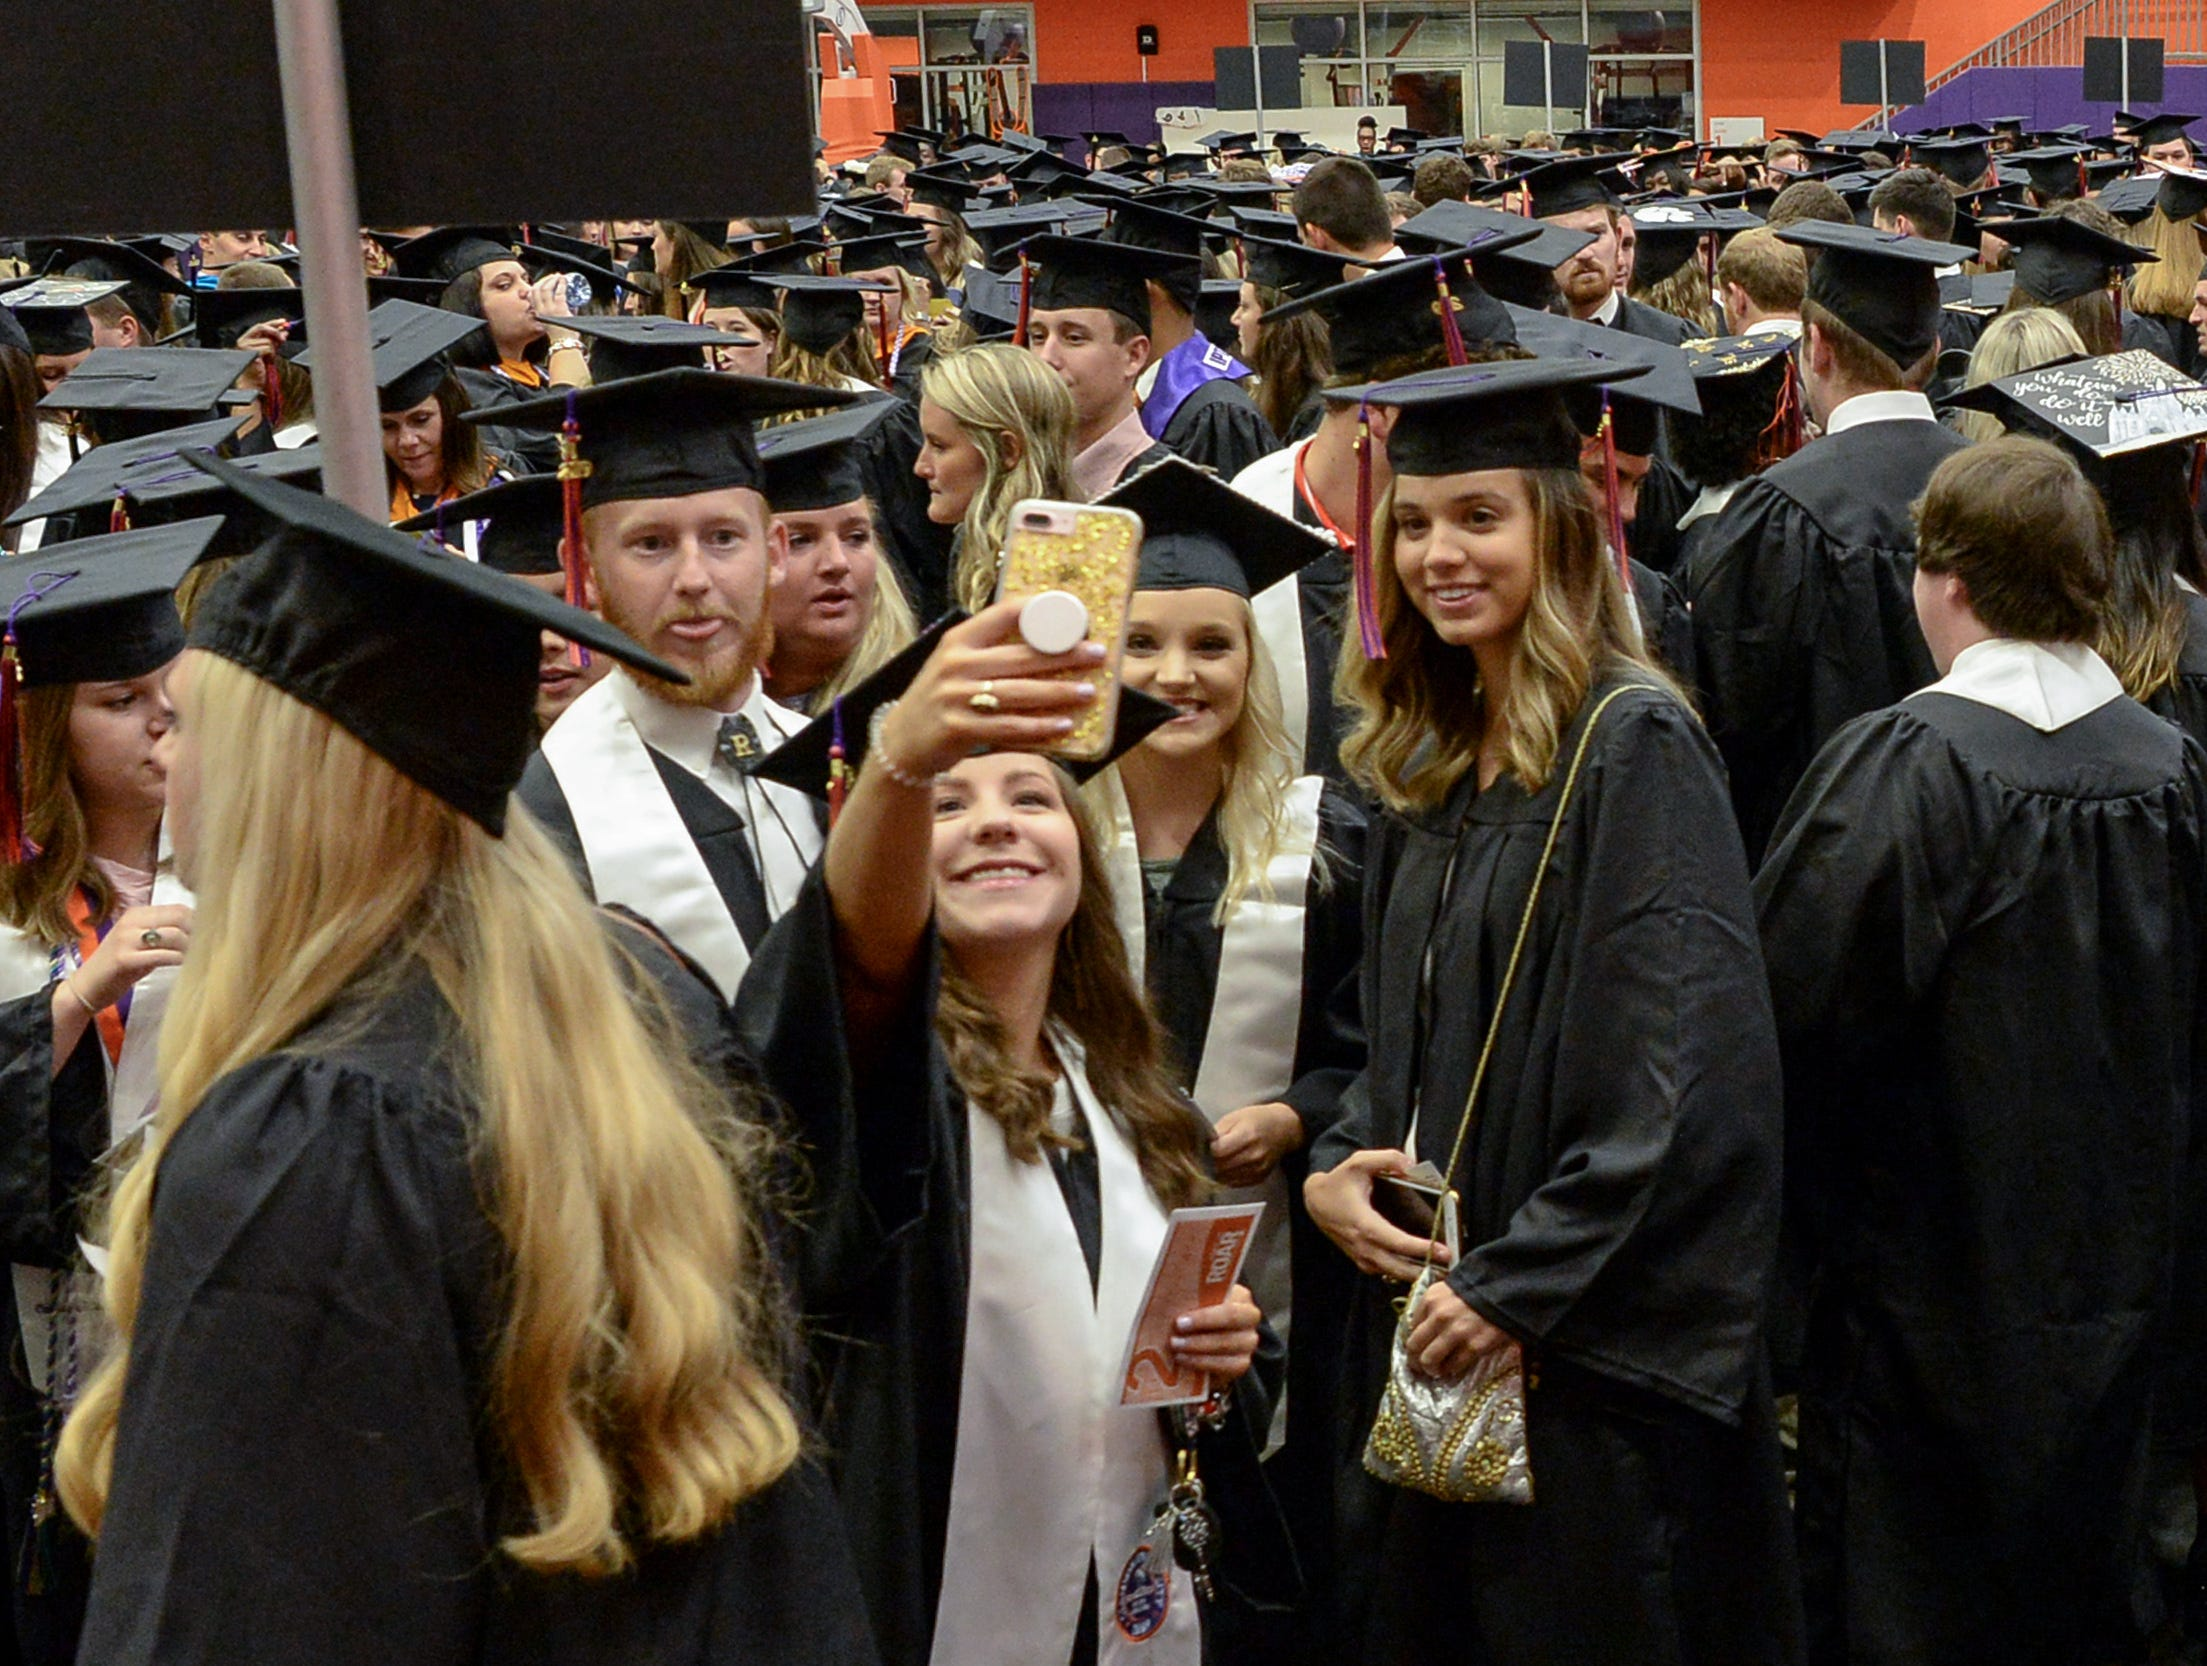 Haley Moore of Aiken gets a selfie photo with friends before  Clemson University commencement ceremonies in Littlejohn Coliseum in Clemson Friday, May 10, 2019.